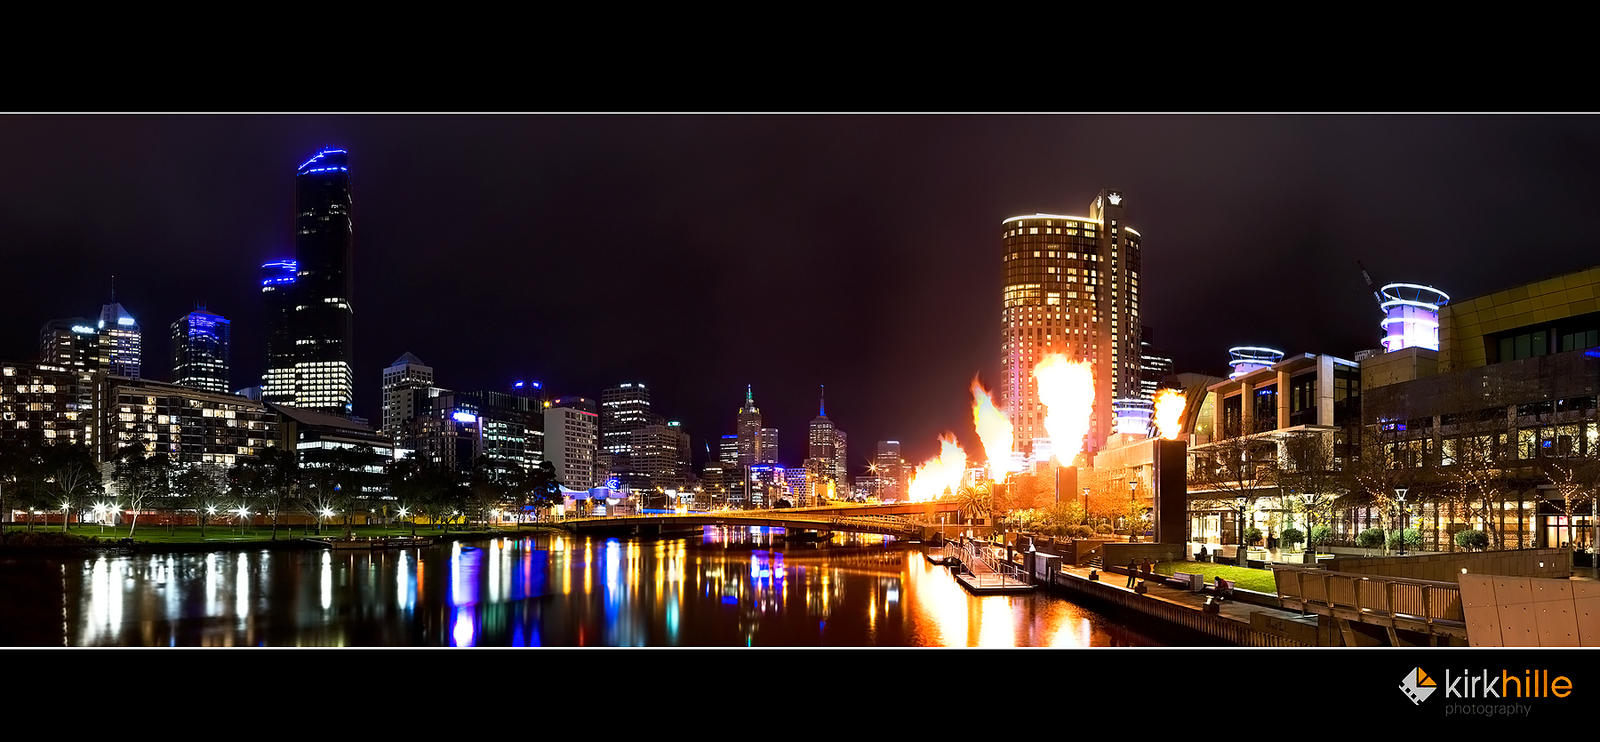 http://fc08.deviantart.net/fs47/i/2009/223/4/d/Melbourne_Skyline_at_Night_by_Furiousxr.jpg